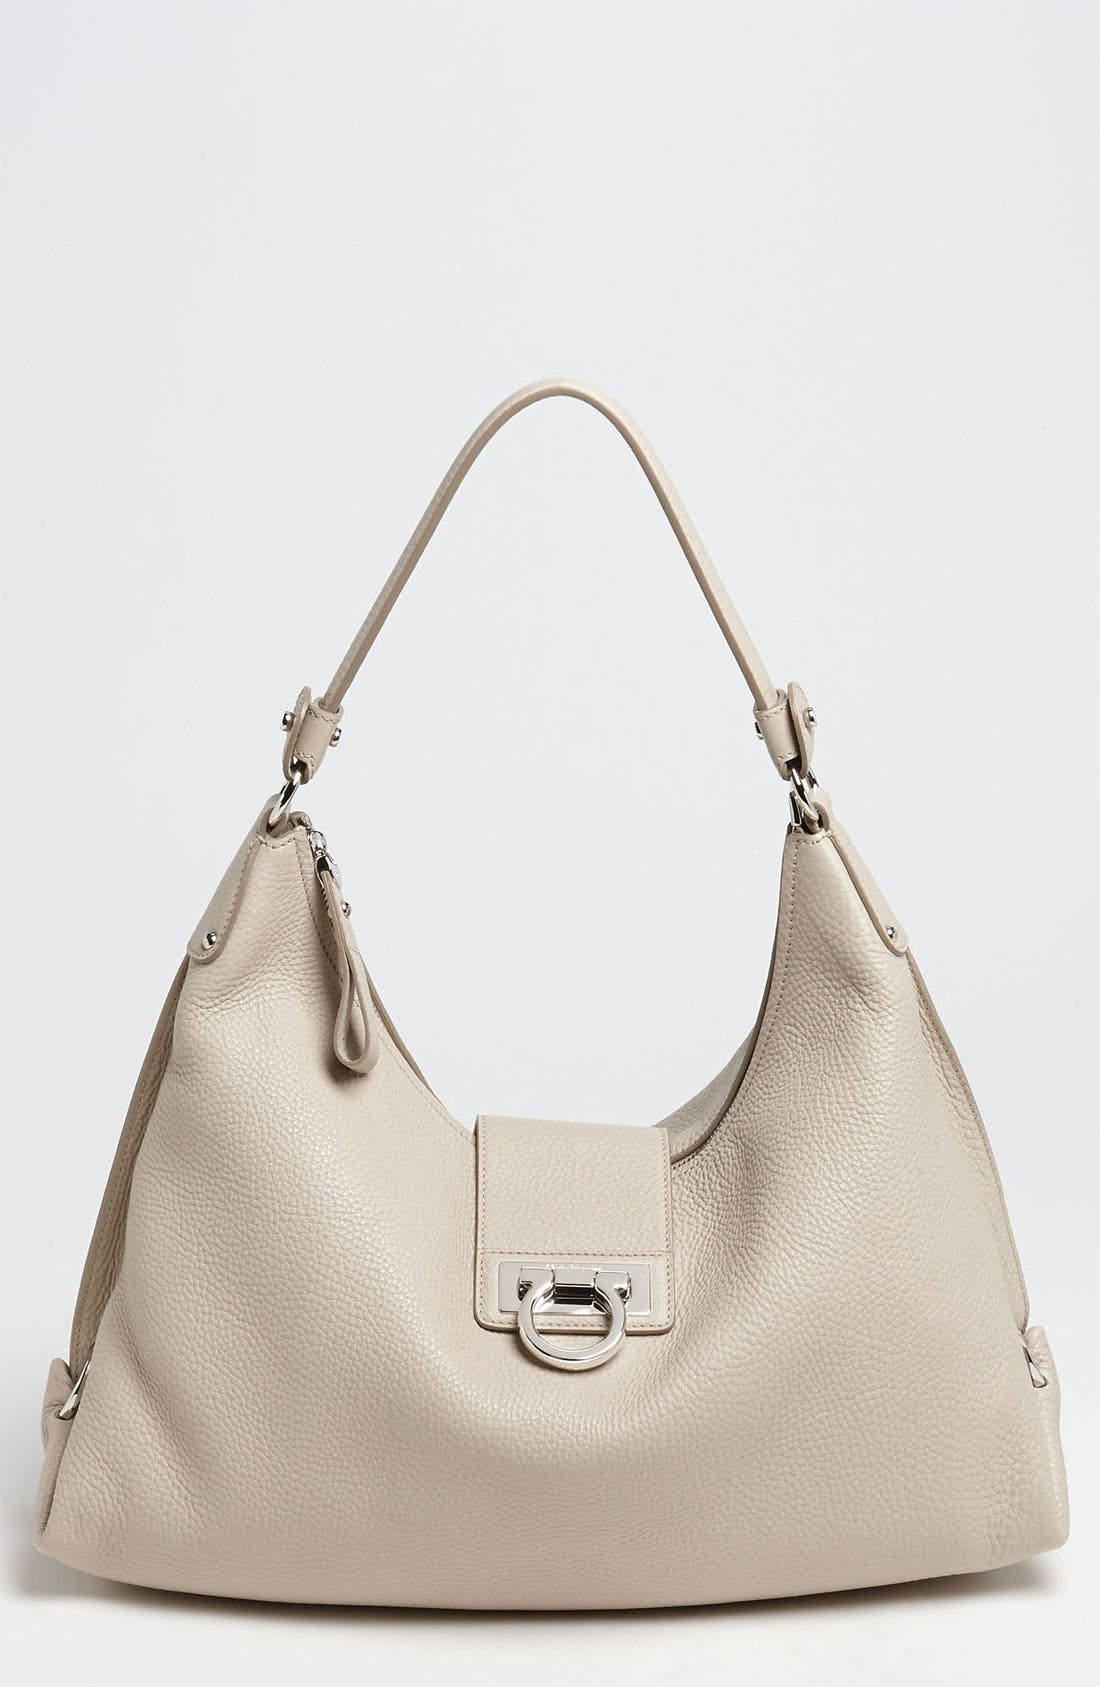 Alternate Image 1 Selected - Salvatore Ferragamo 'Fanisa' Hobo